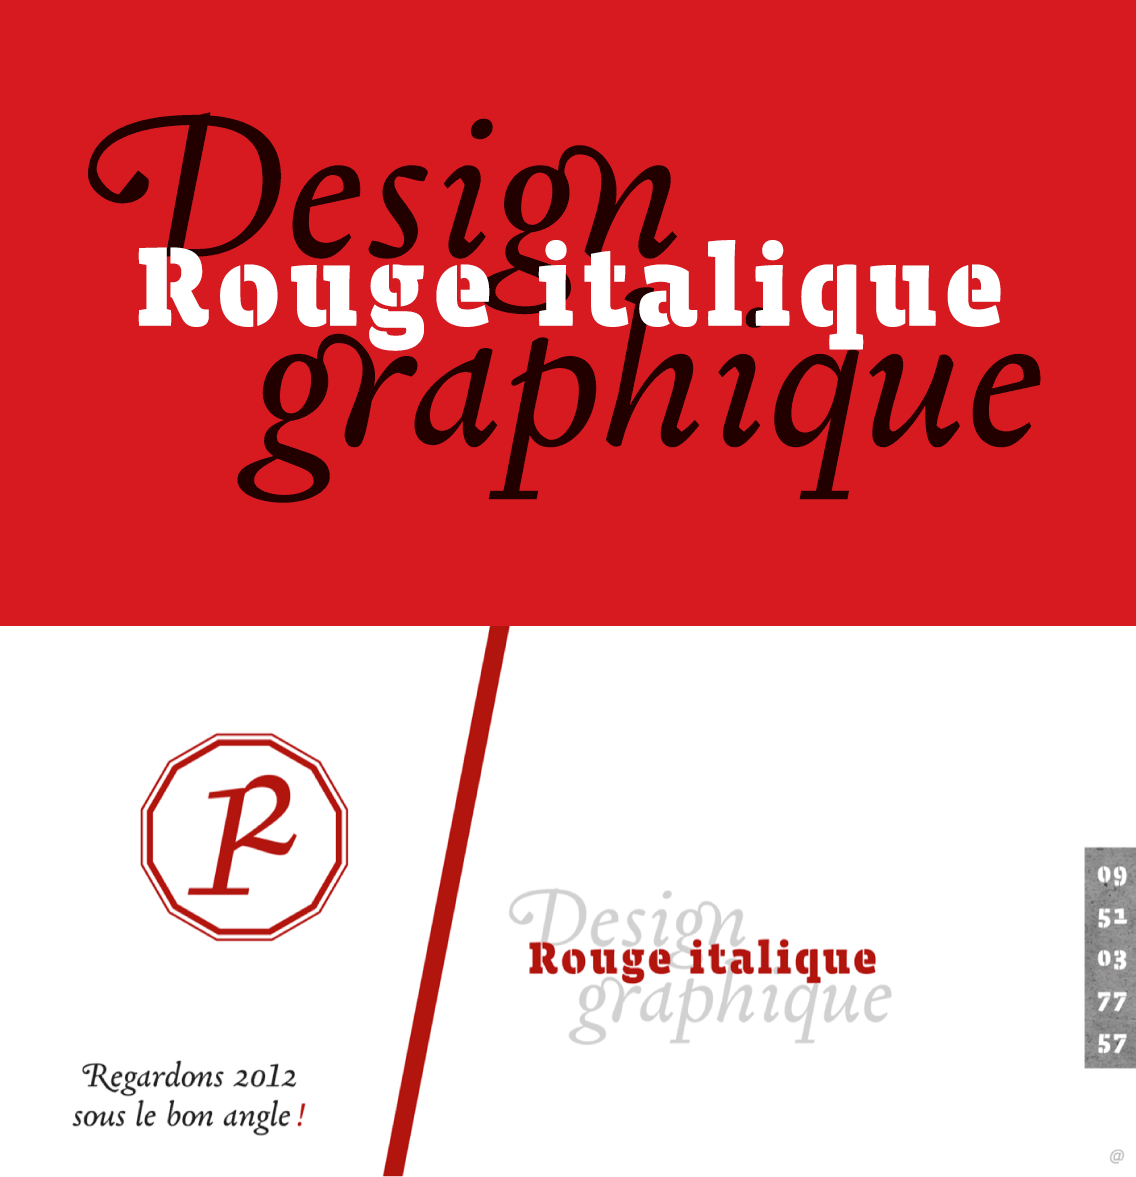 Xavier Dupre forthcoming typefaces in use